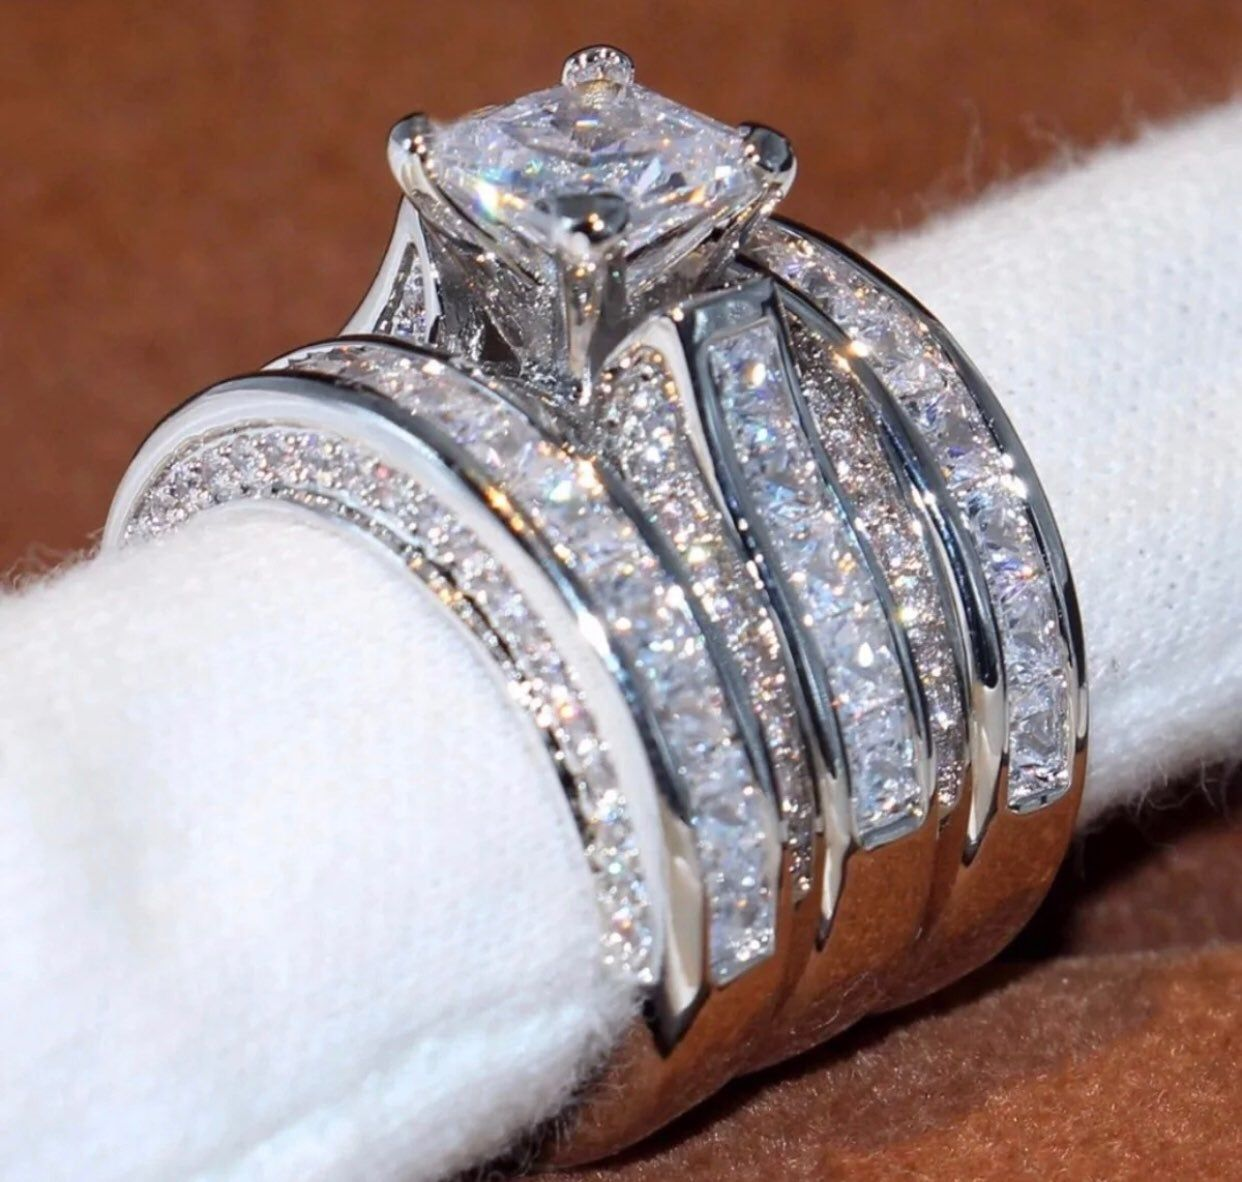 Stones High Quality Created Diamond Cubic Zirconias That Sparkle Glitter And Shine Like White Gold Wedding Ring Set Wedding Rings Sets Gold Wedding Ring Bands